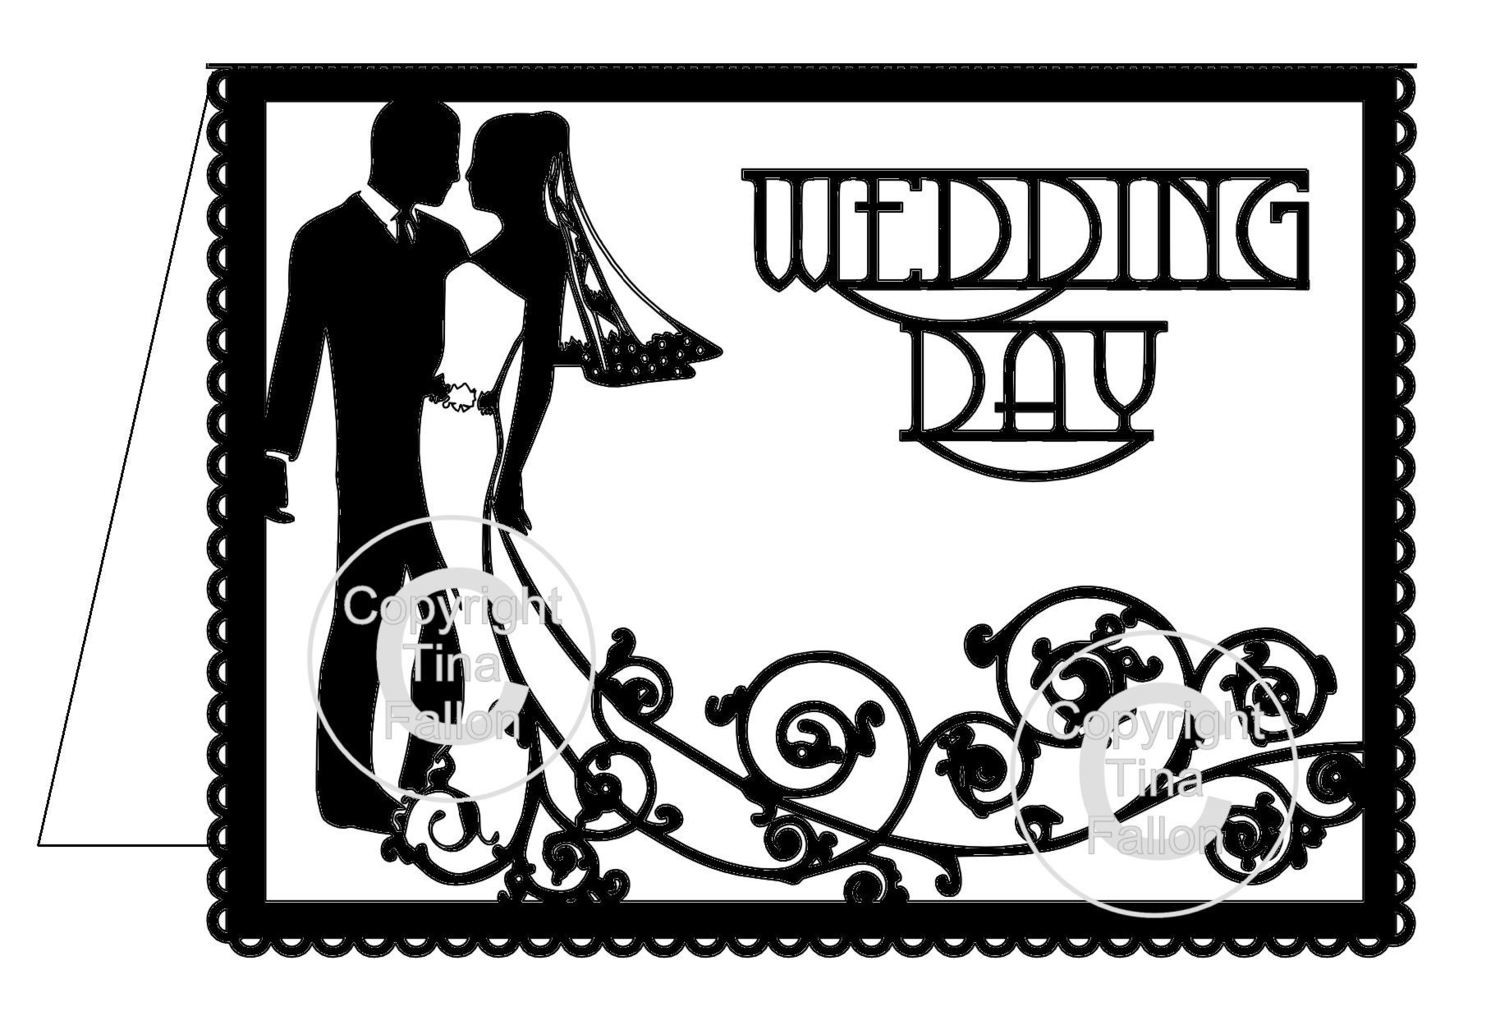 Wedding Day Card Groom and Bride Swirl please read info